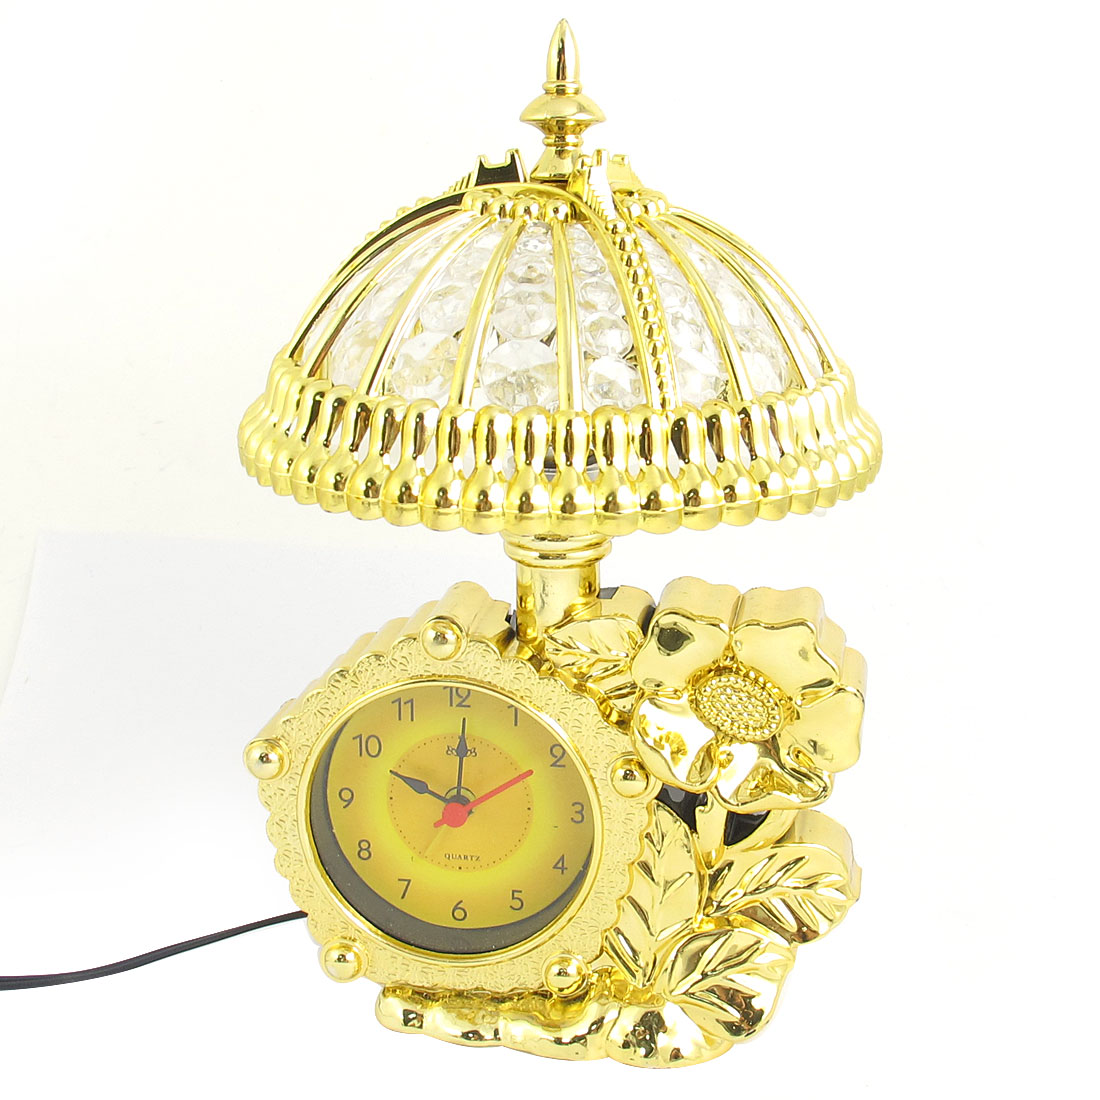 Home Multifunction Arabic Number Round Dial Semicircle Gold Tone Shade Floral Embossed Desk Table Alarm Clock Lamp UK Plug AC 250V